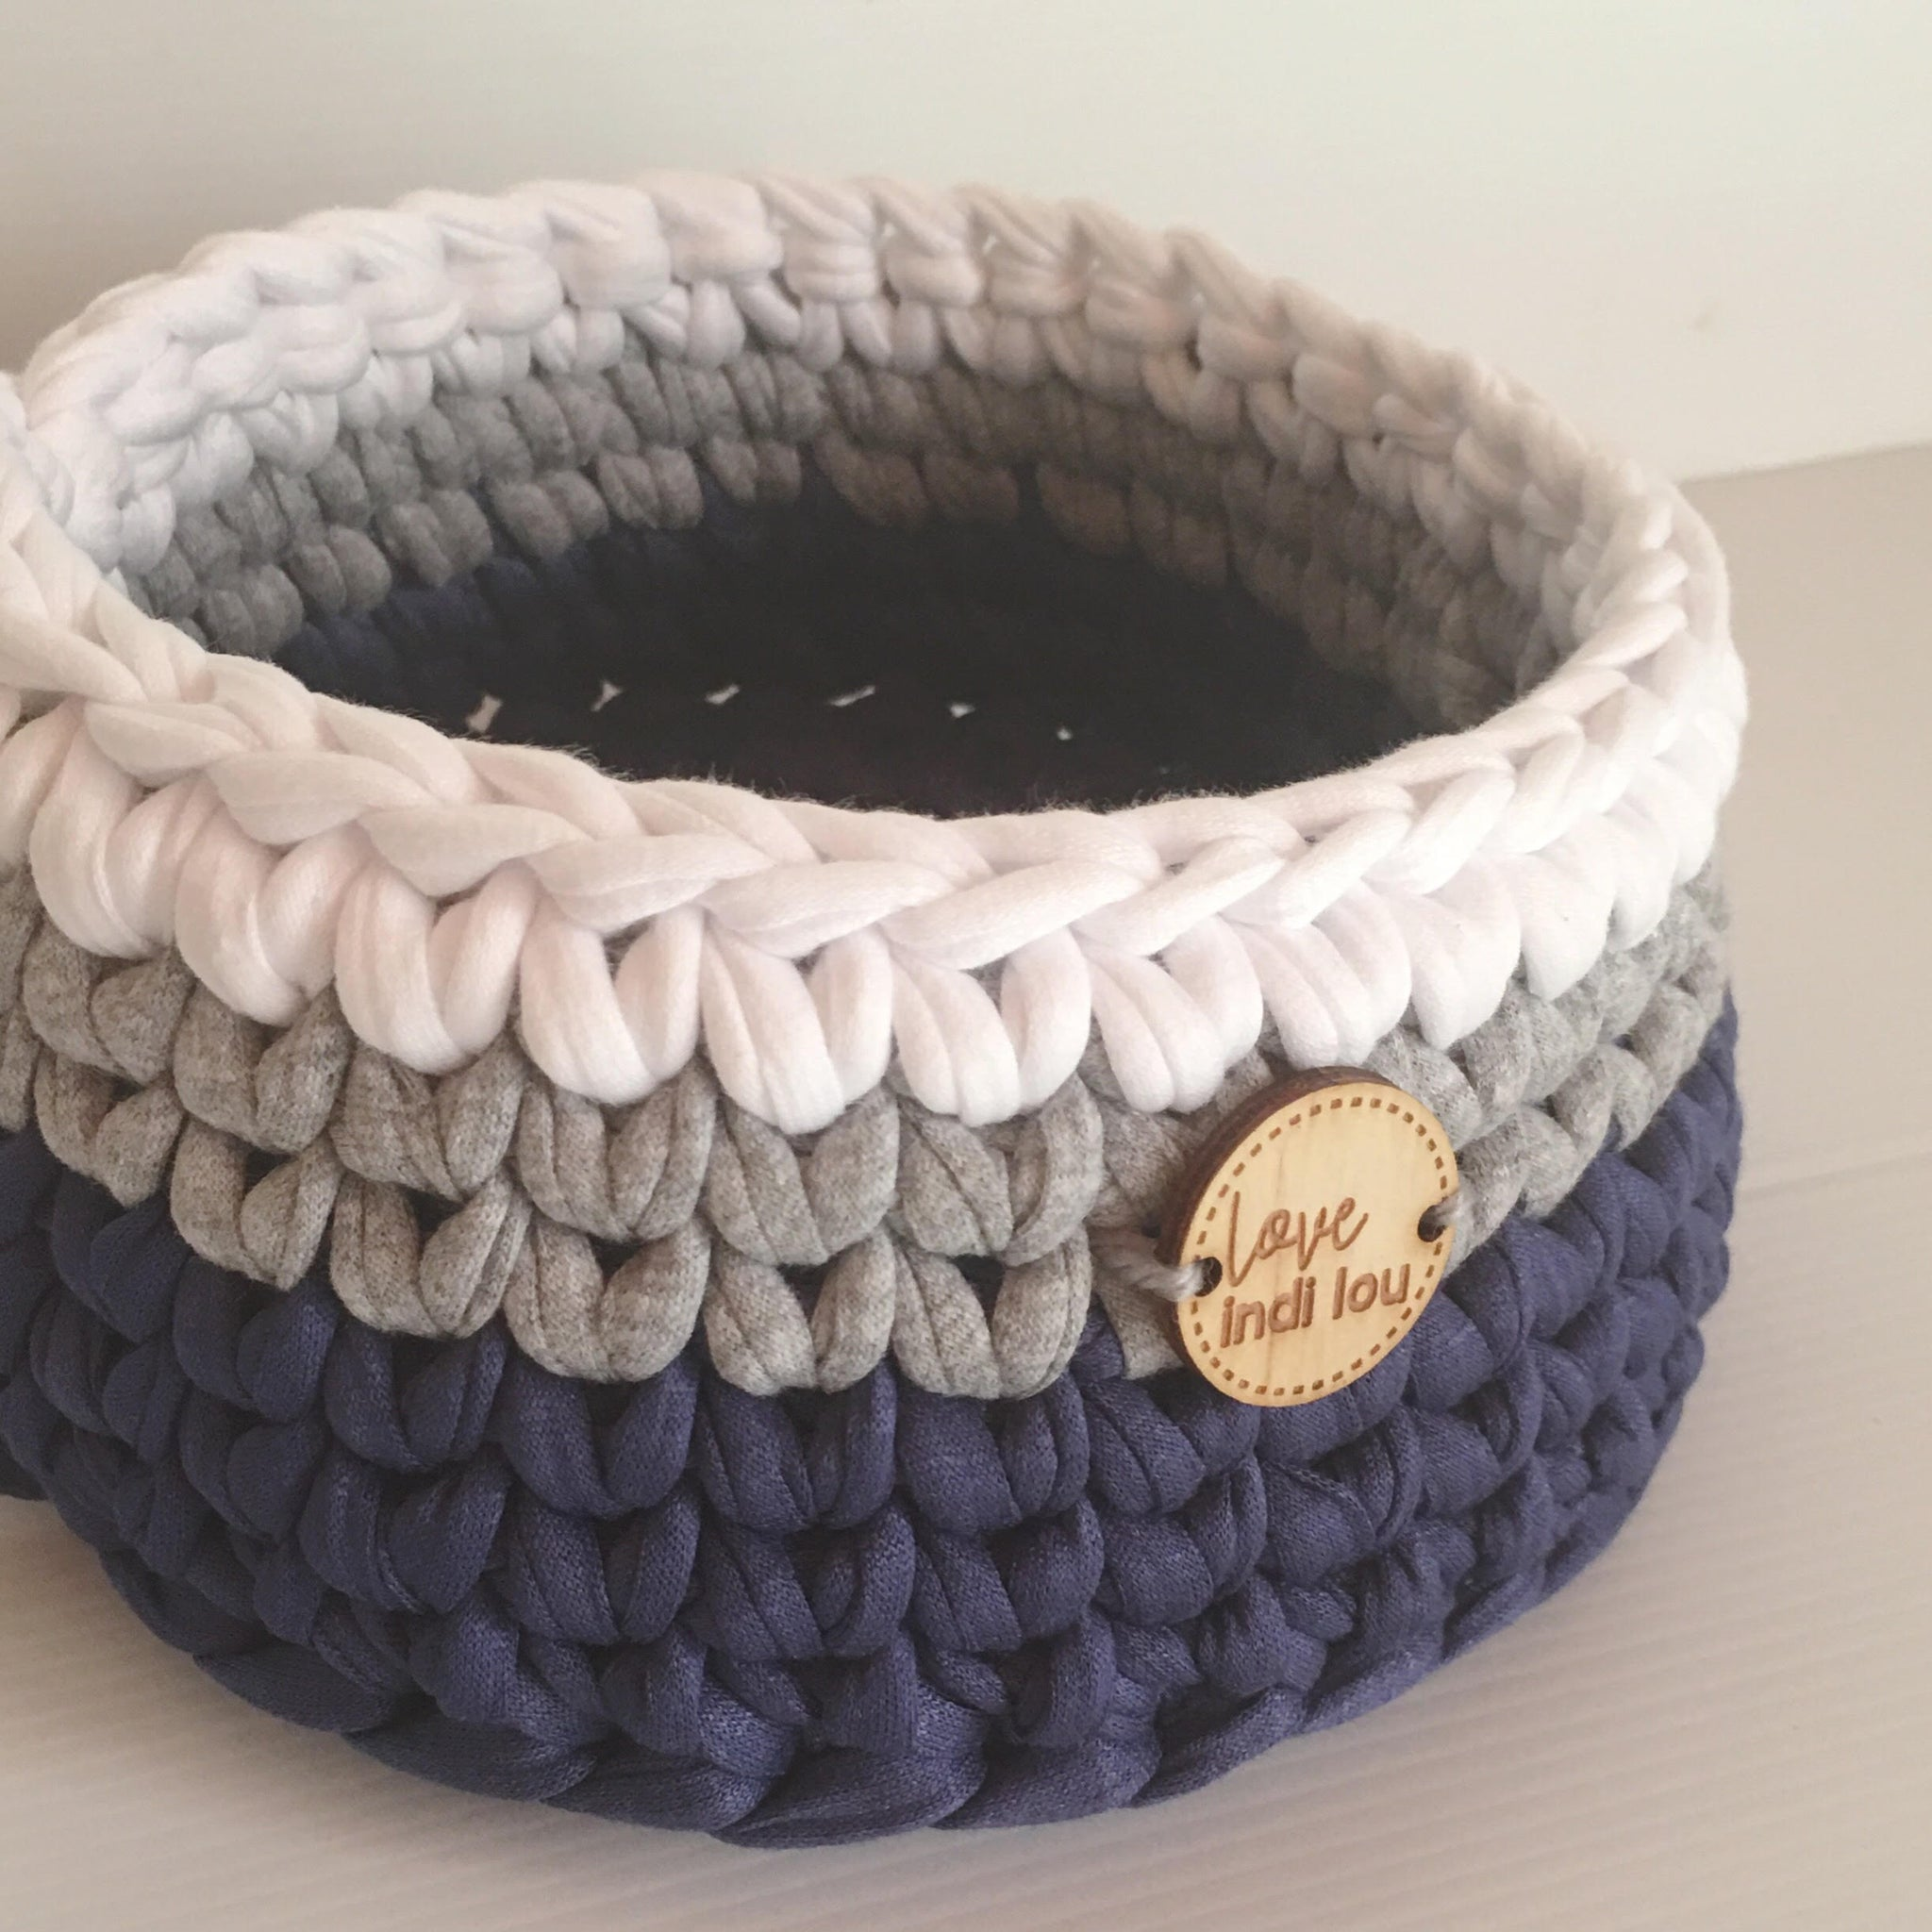 Crochet Storage Basket - Navy Blue, Grey + White